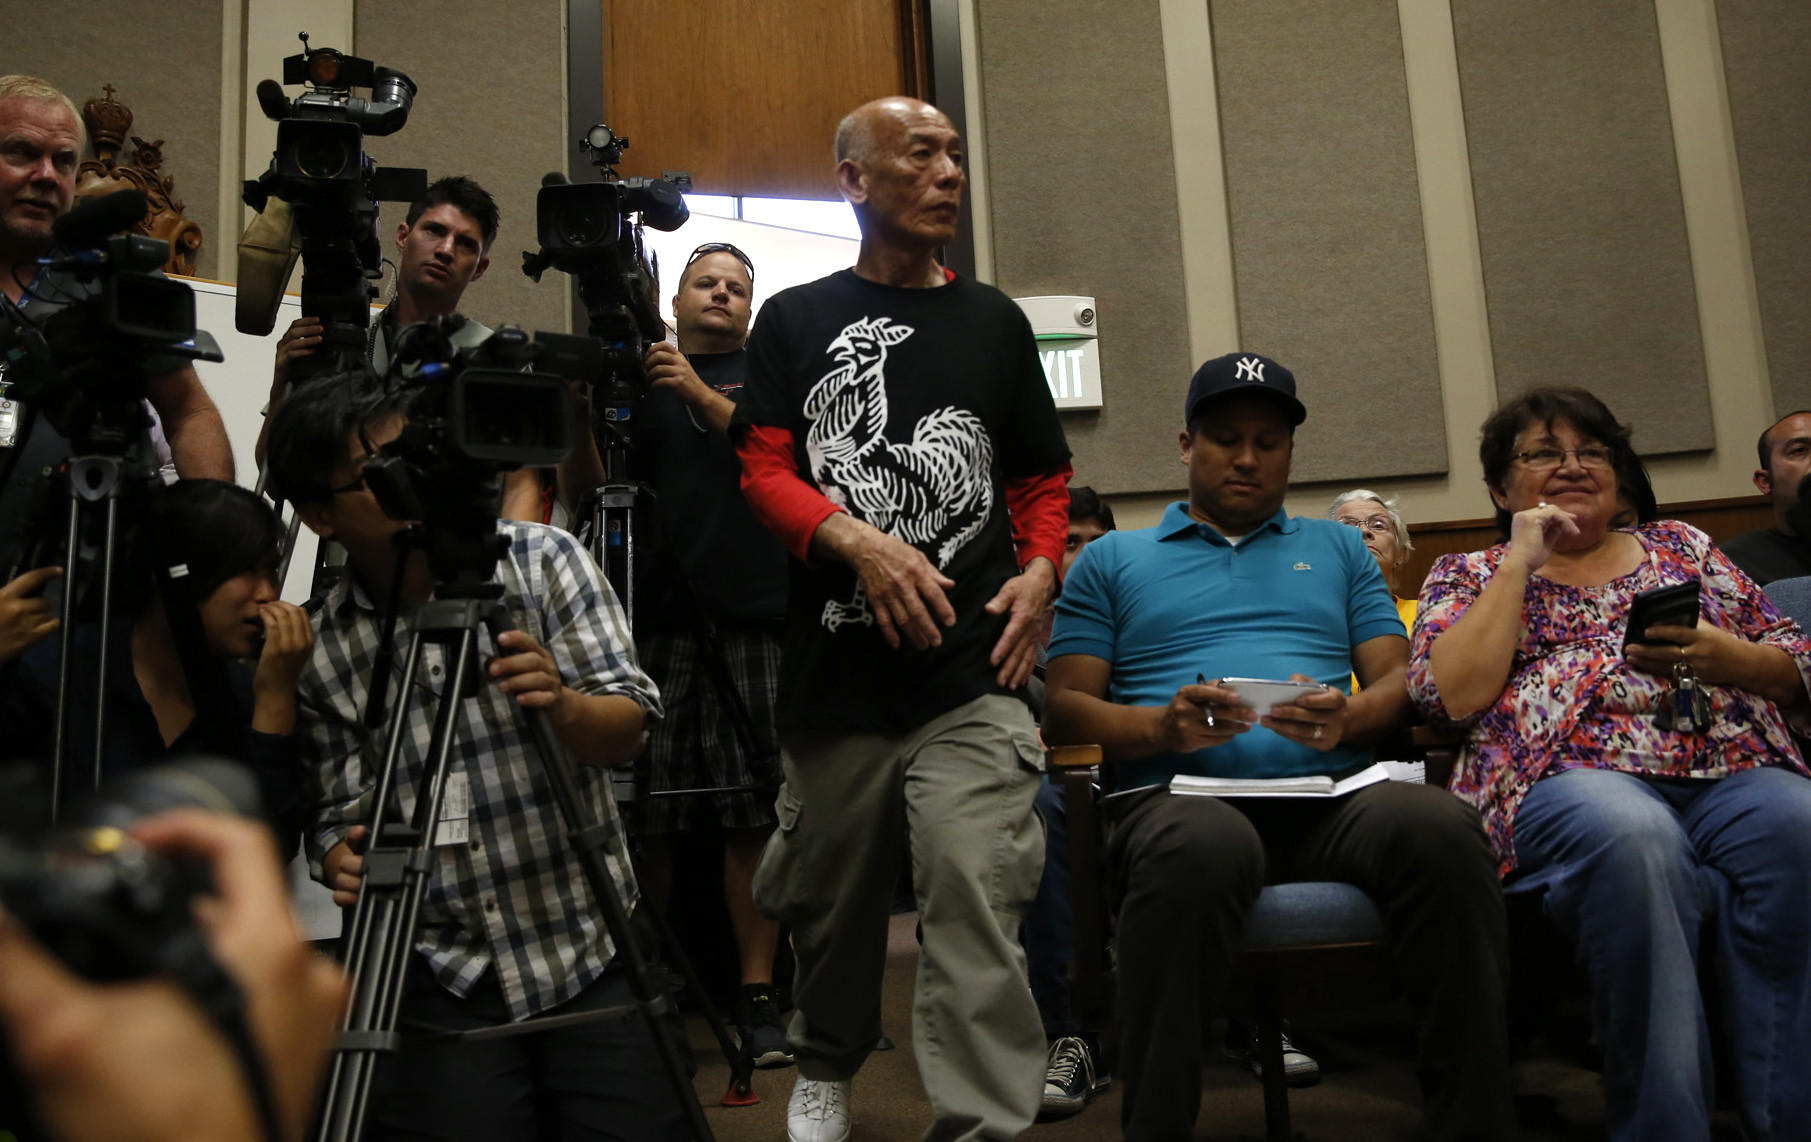 Sriracha plant owner David Tran arrives at the Irwindale city council meeting.